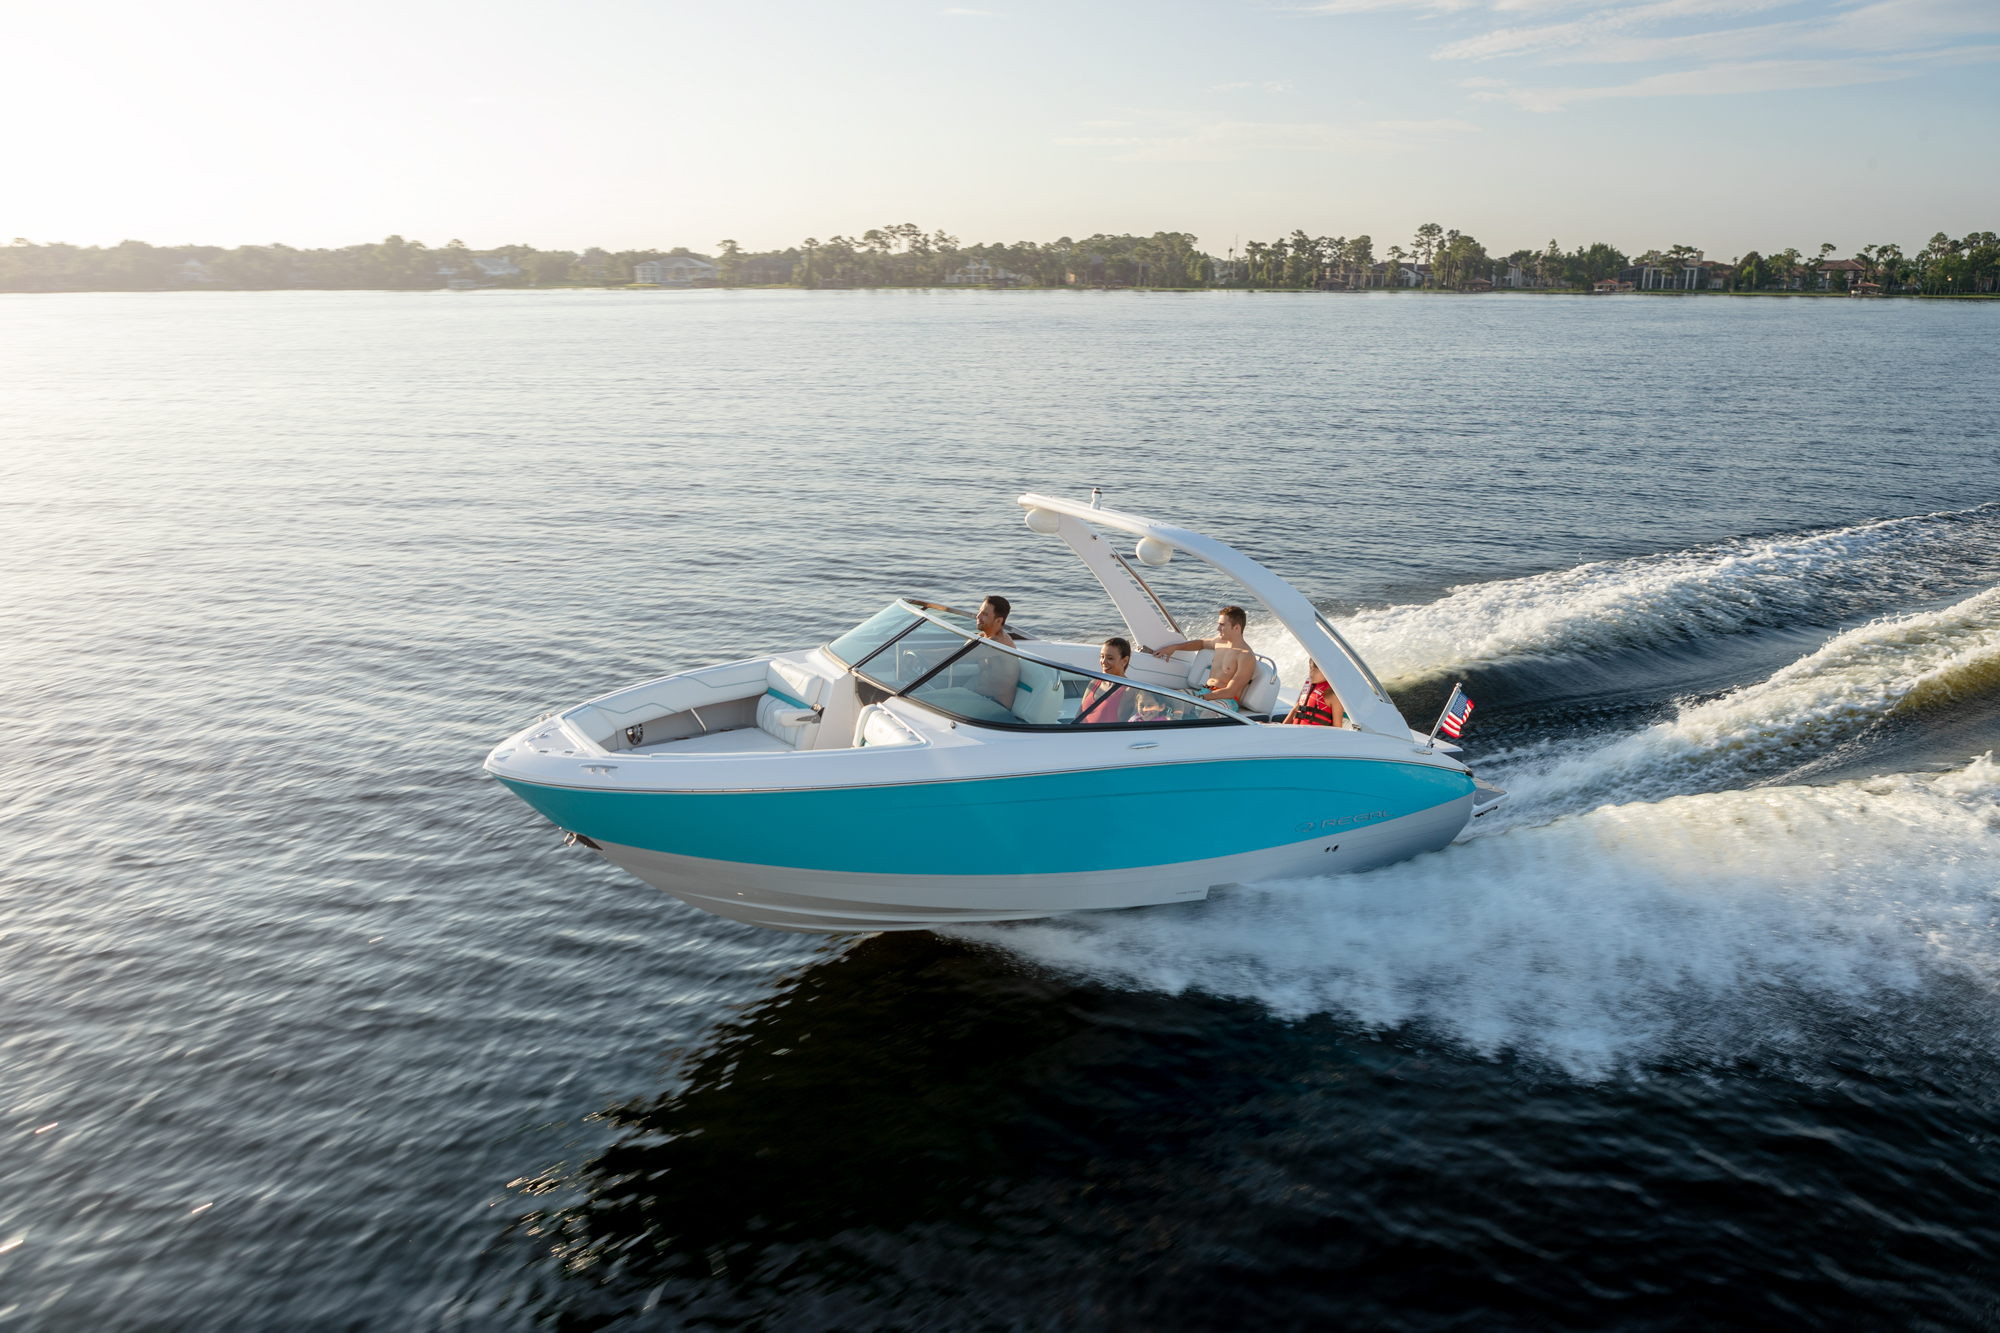 The Regal FasTrac Hull outperformance competitors in the same boat size and category.